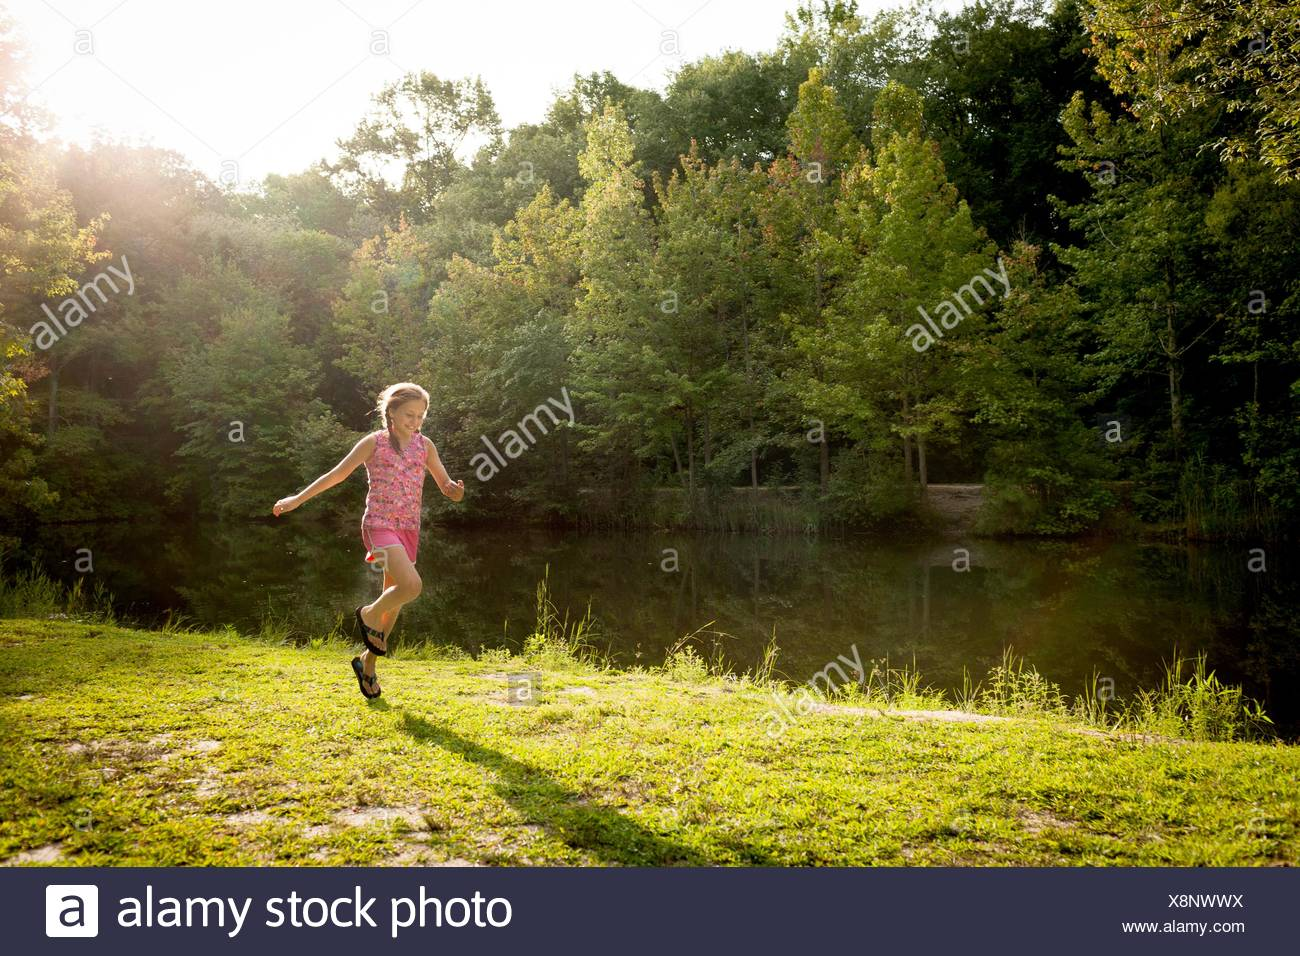 Girl skipping along river bank arms open - Stock Image